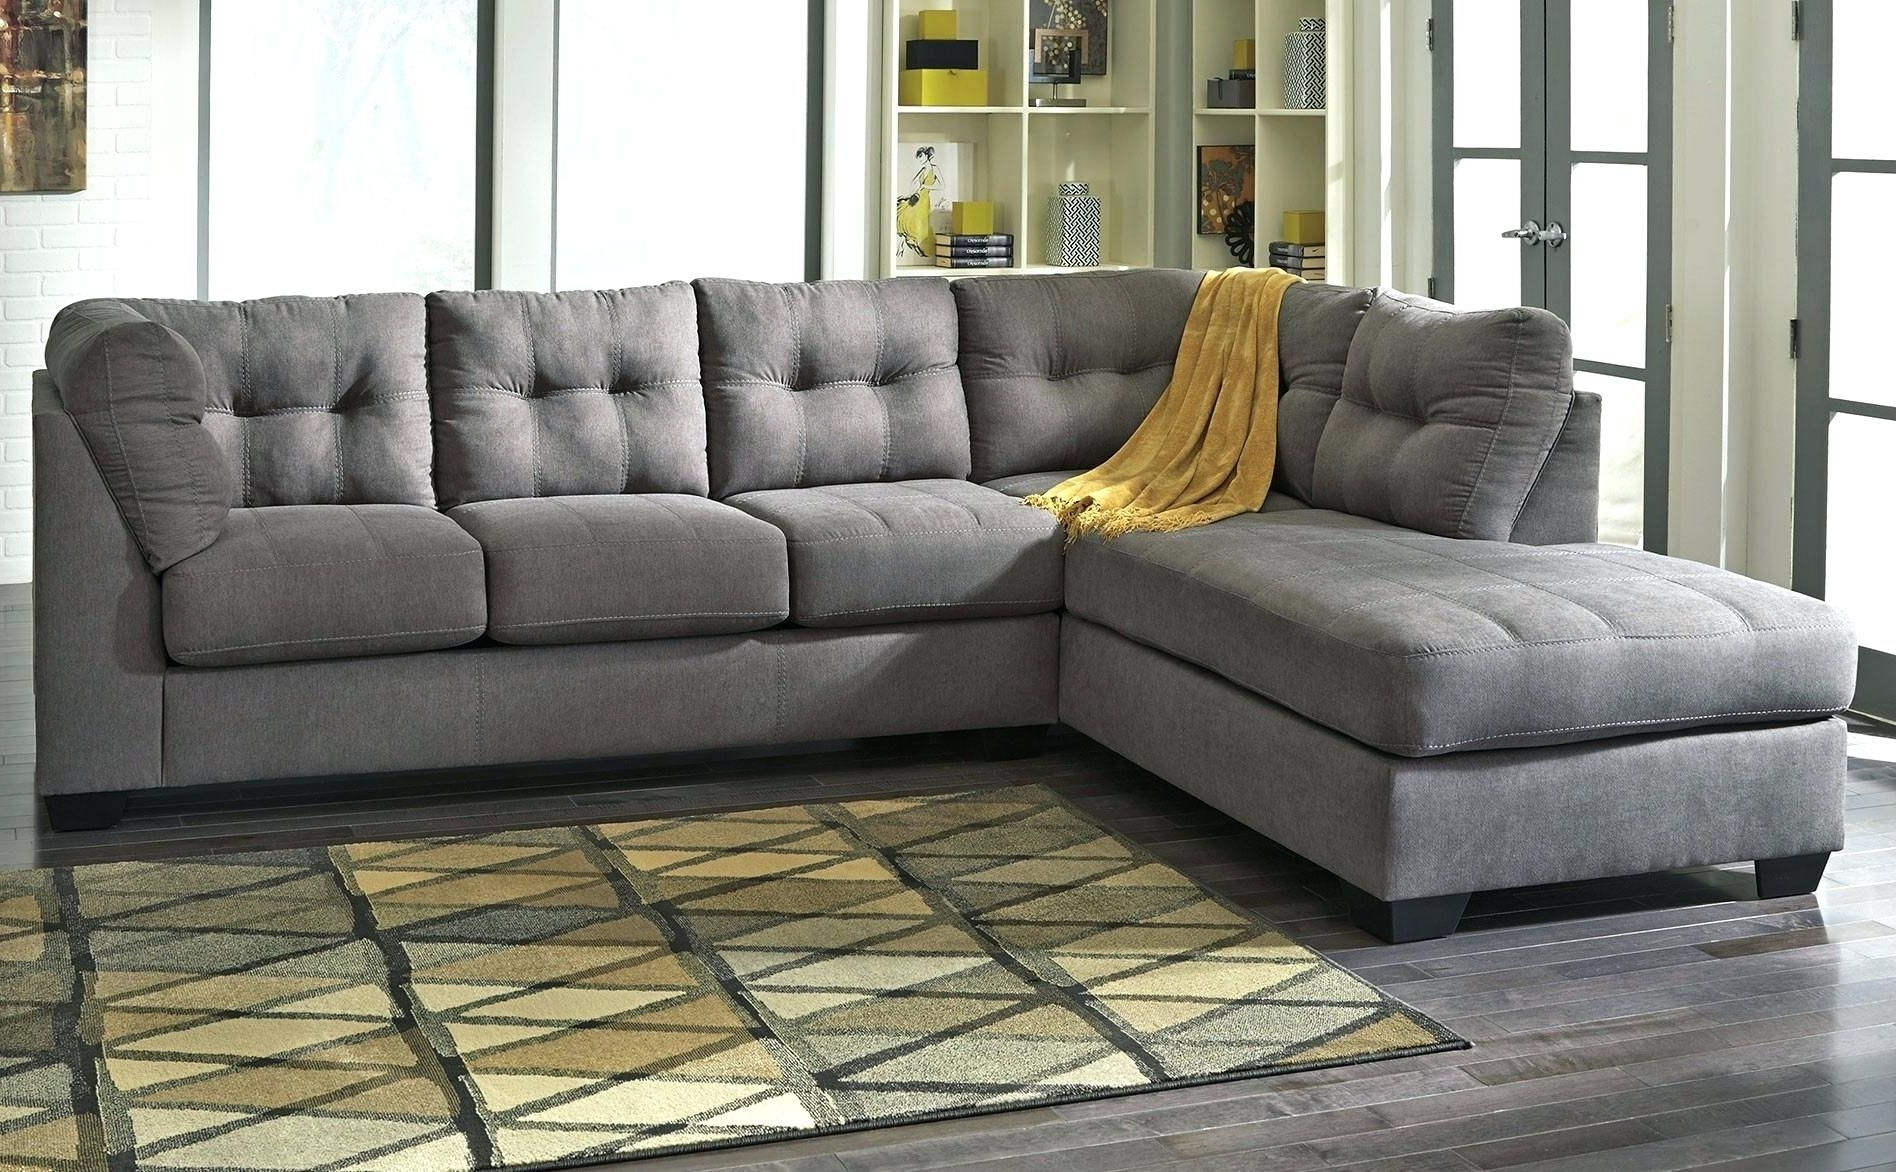 Tufted Sectional Sofas With Chaise Throughout Current Tufted Sectional Sofa Modern Grey With Chaise – Jasonatavastrealty (View 11 of 20)